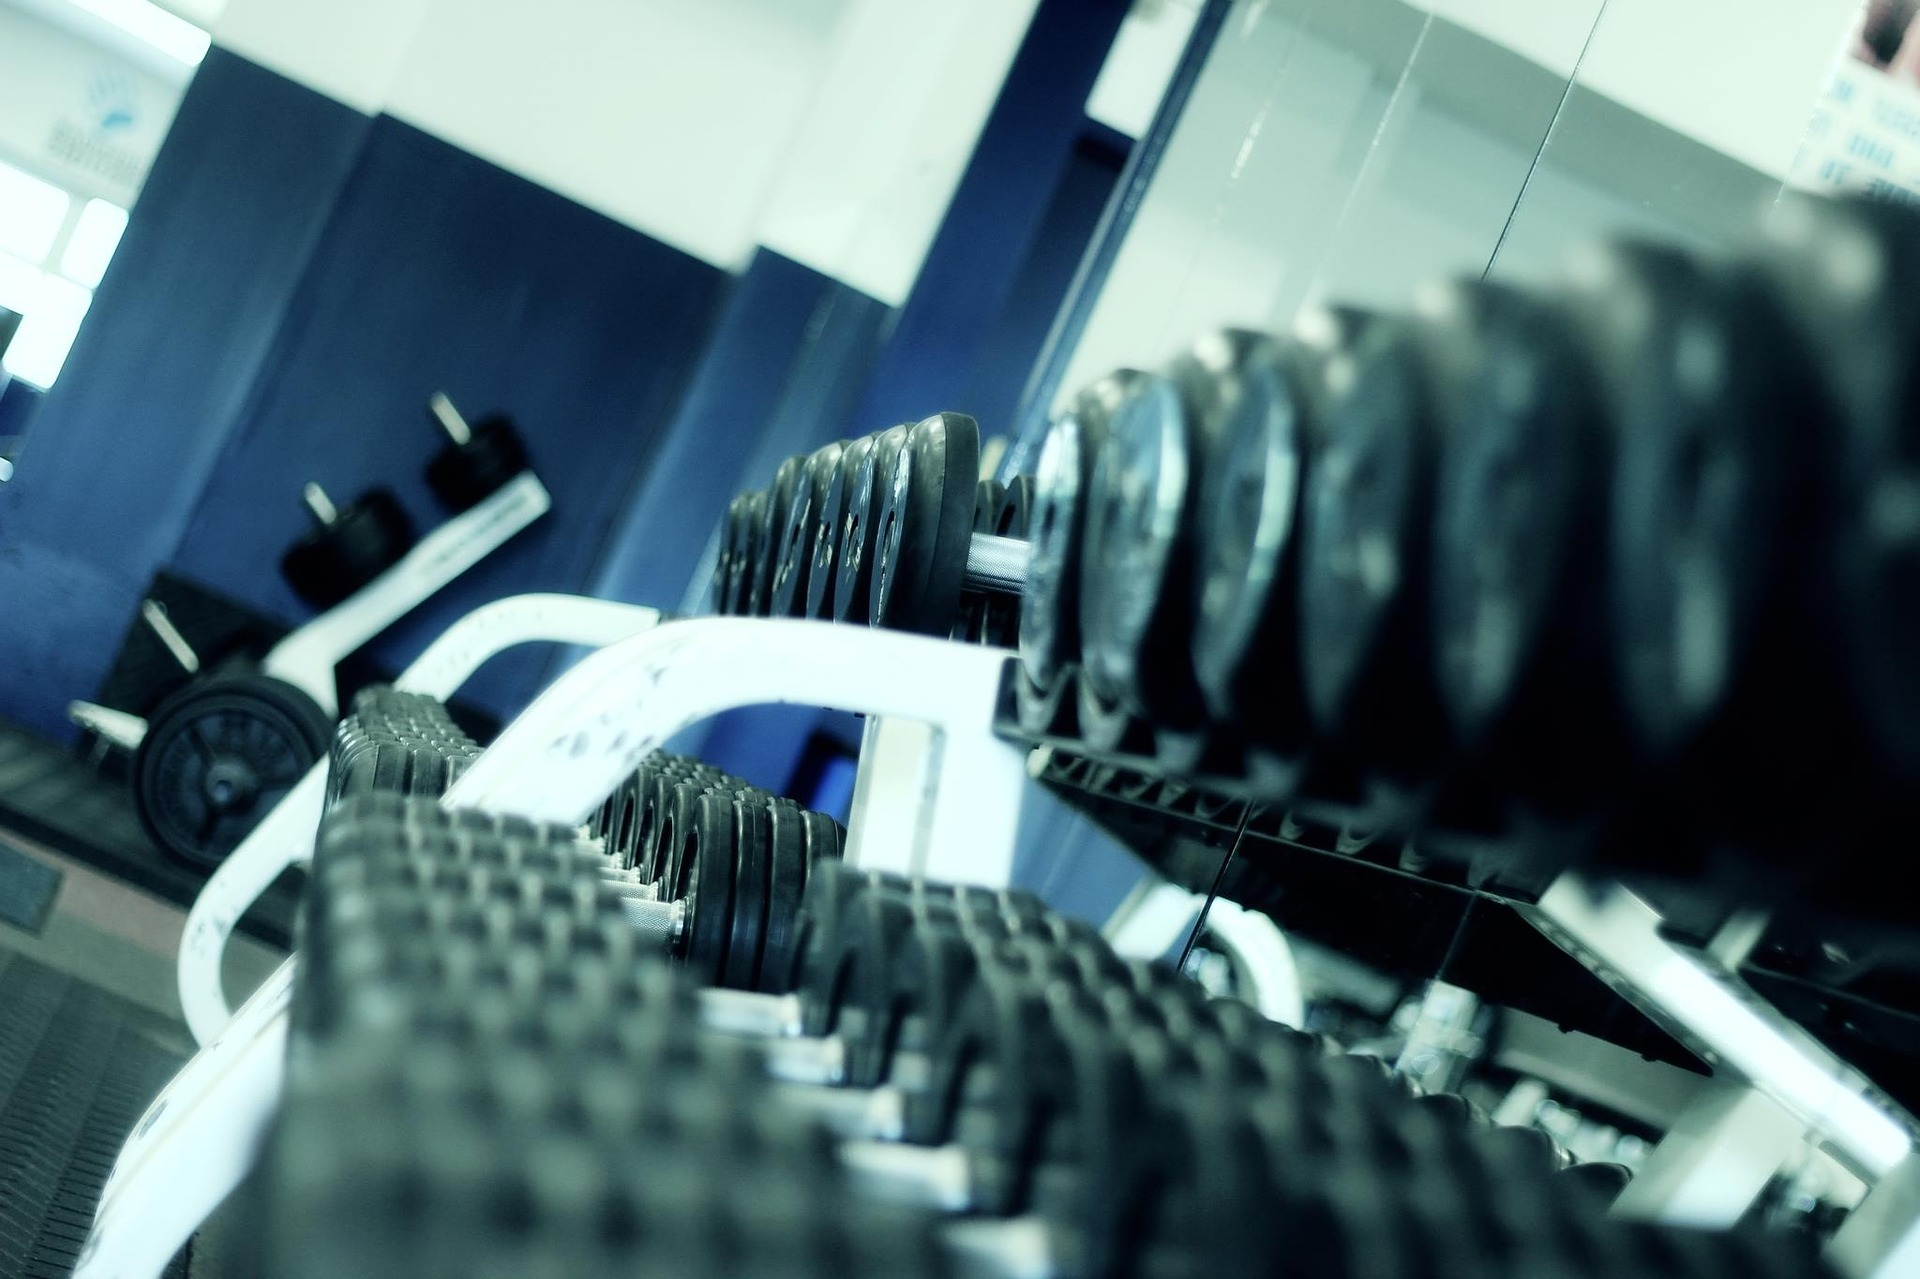 rows of barbells at a gym